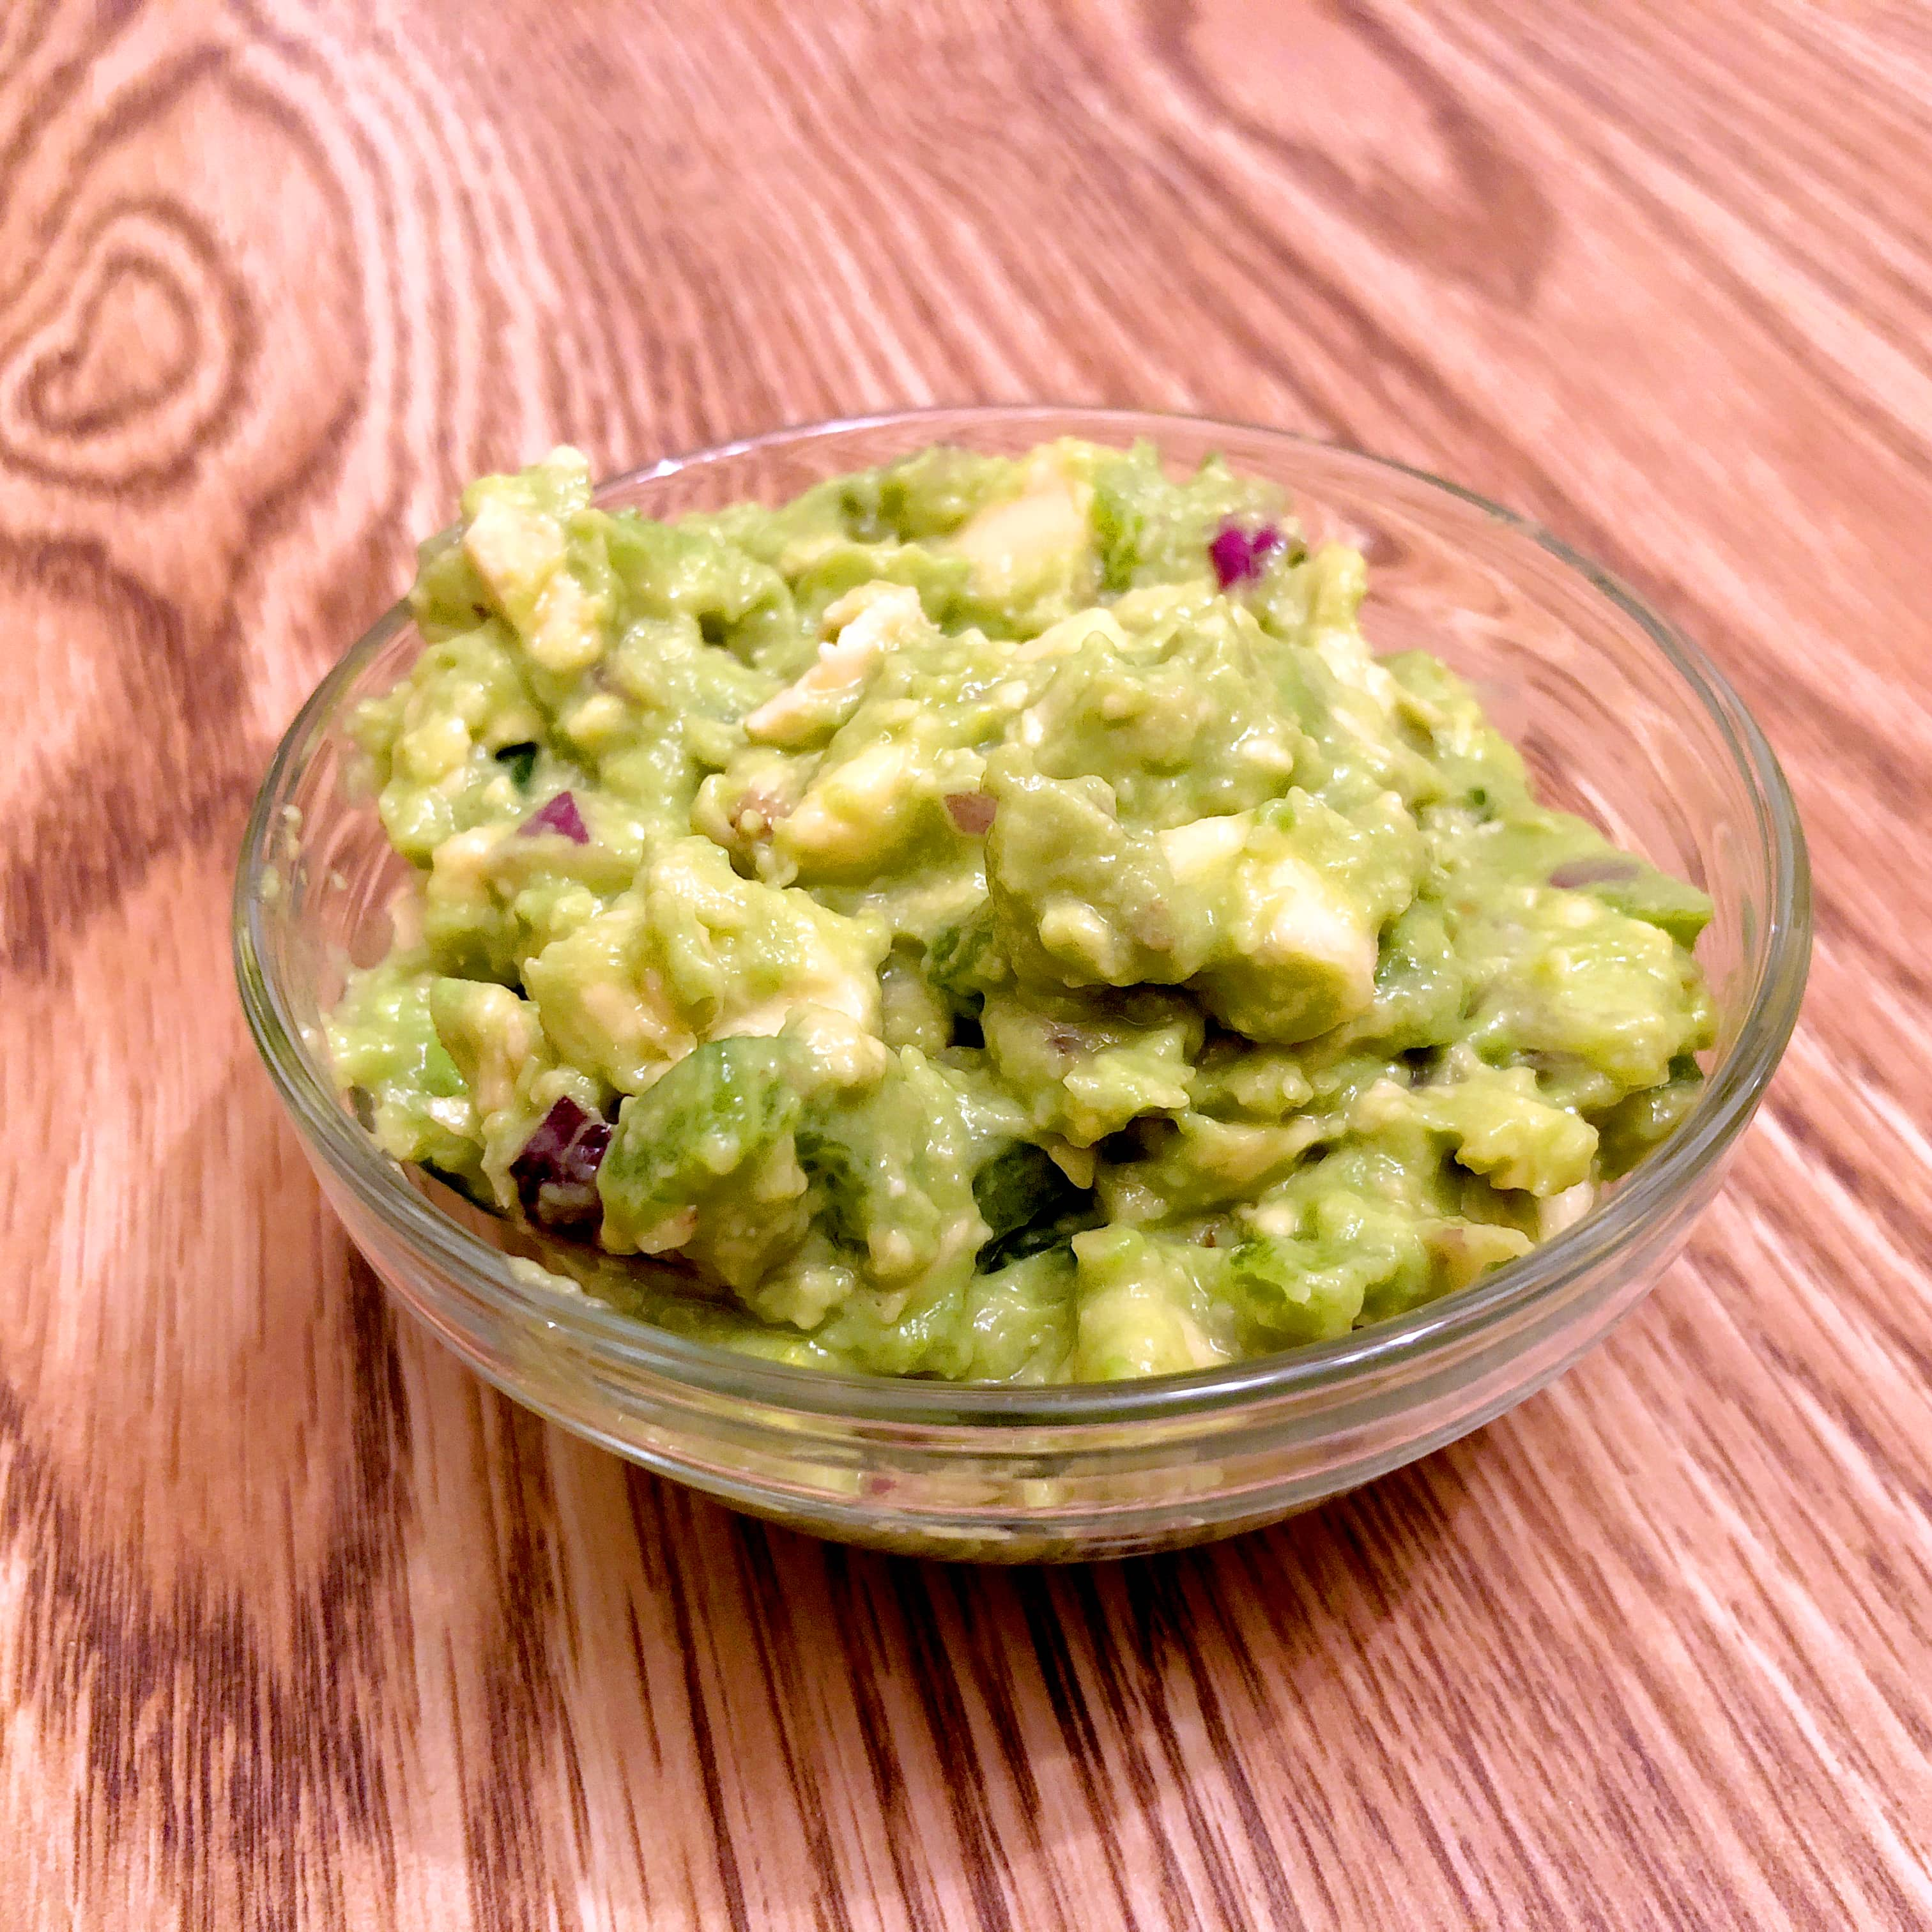 Easy Guacamole Recipe In Bowl